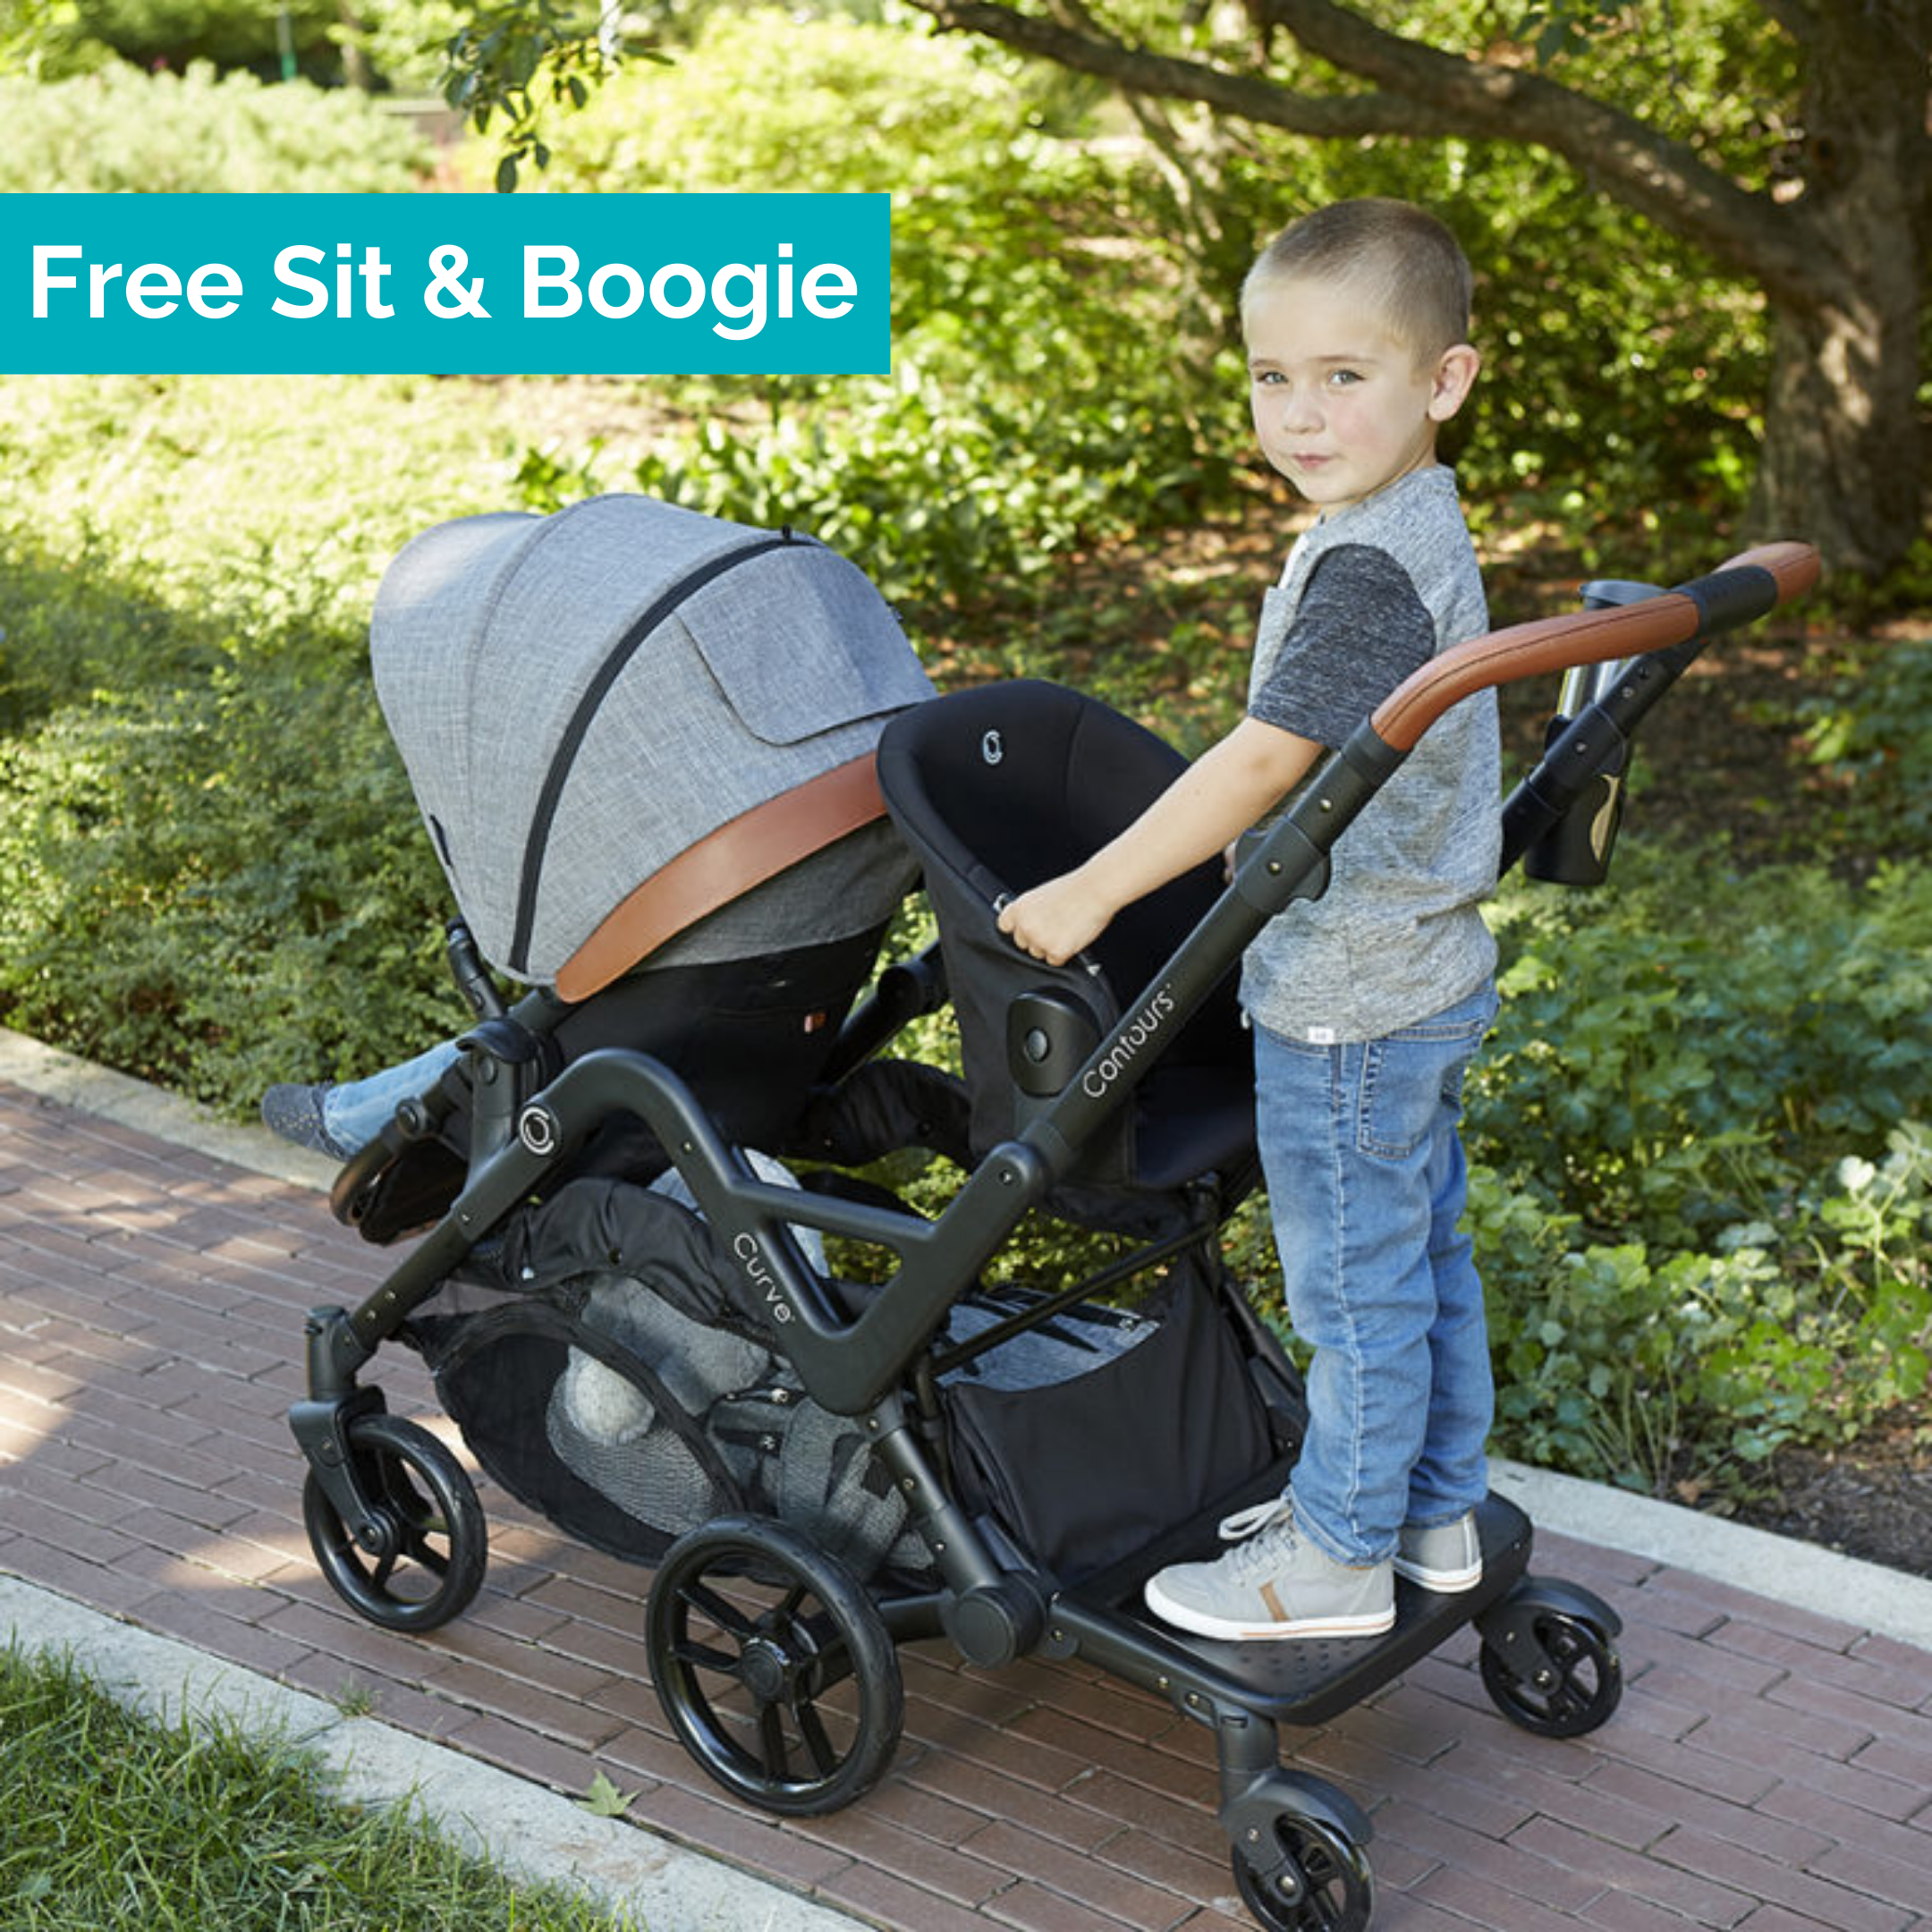 27+ Double baby stroller infant and toddler ideas in 2021